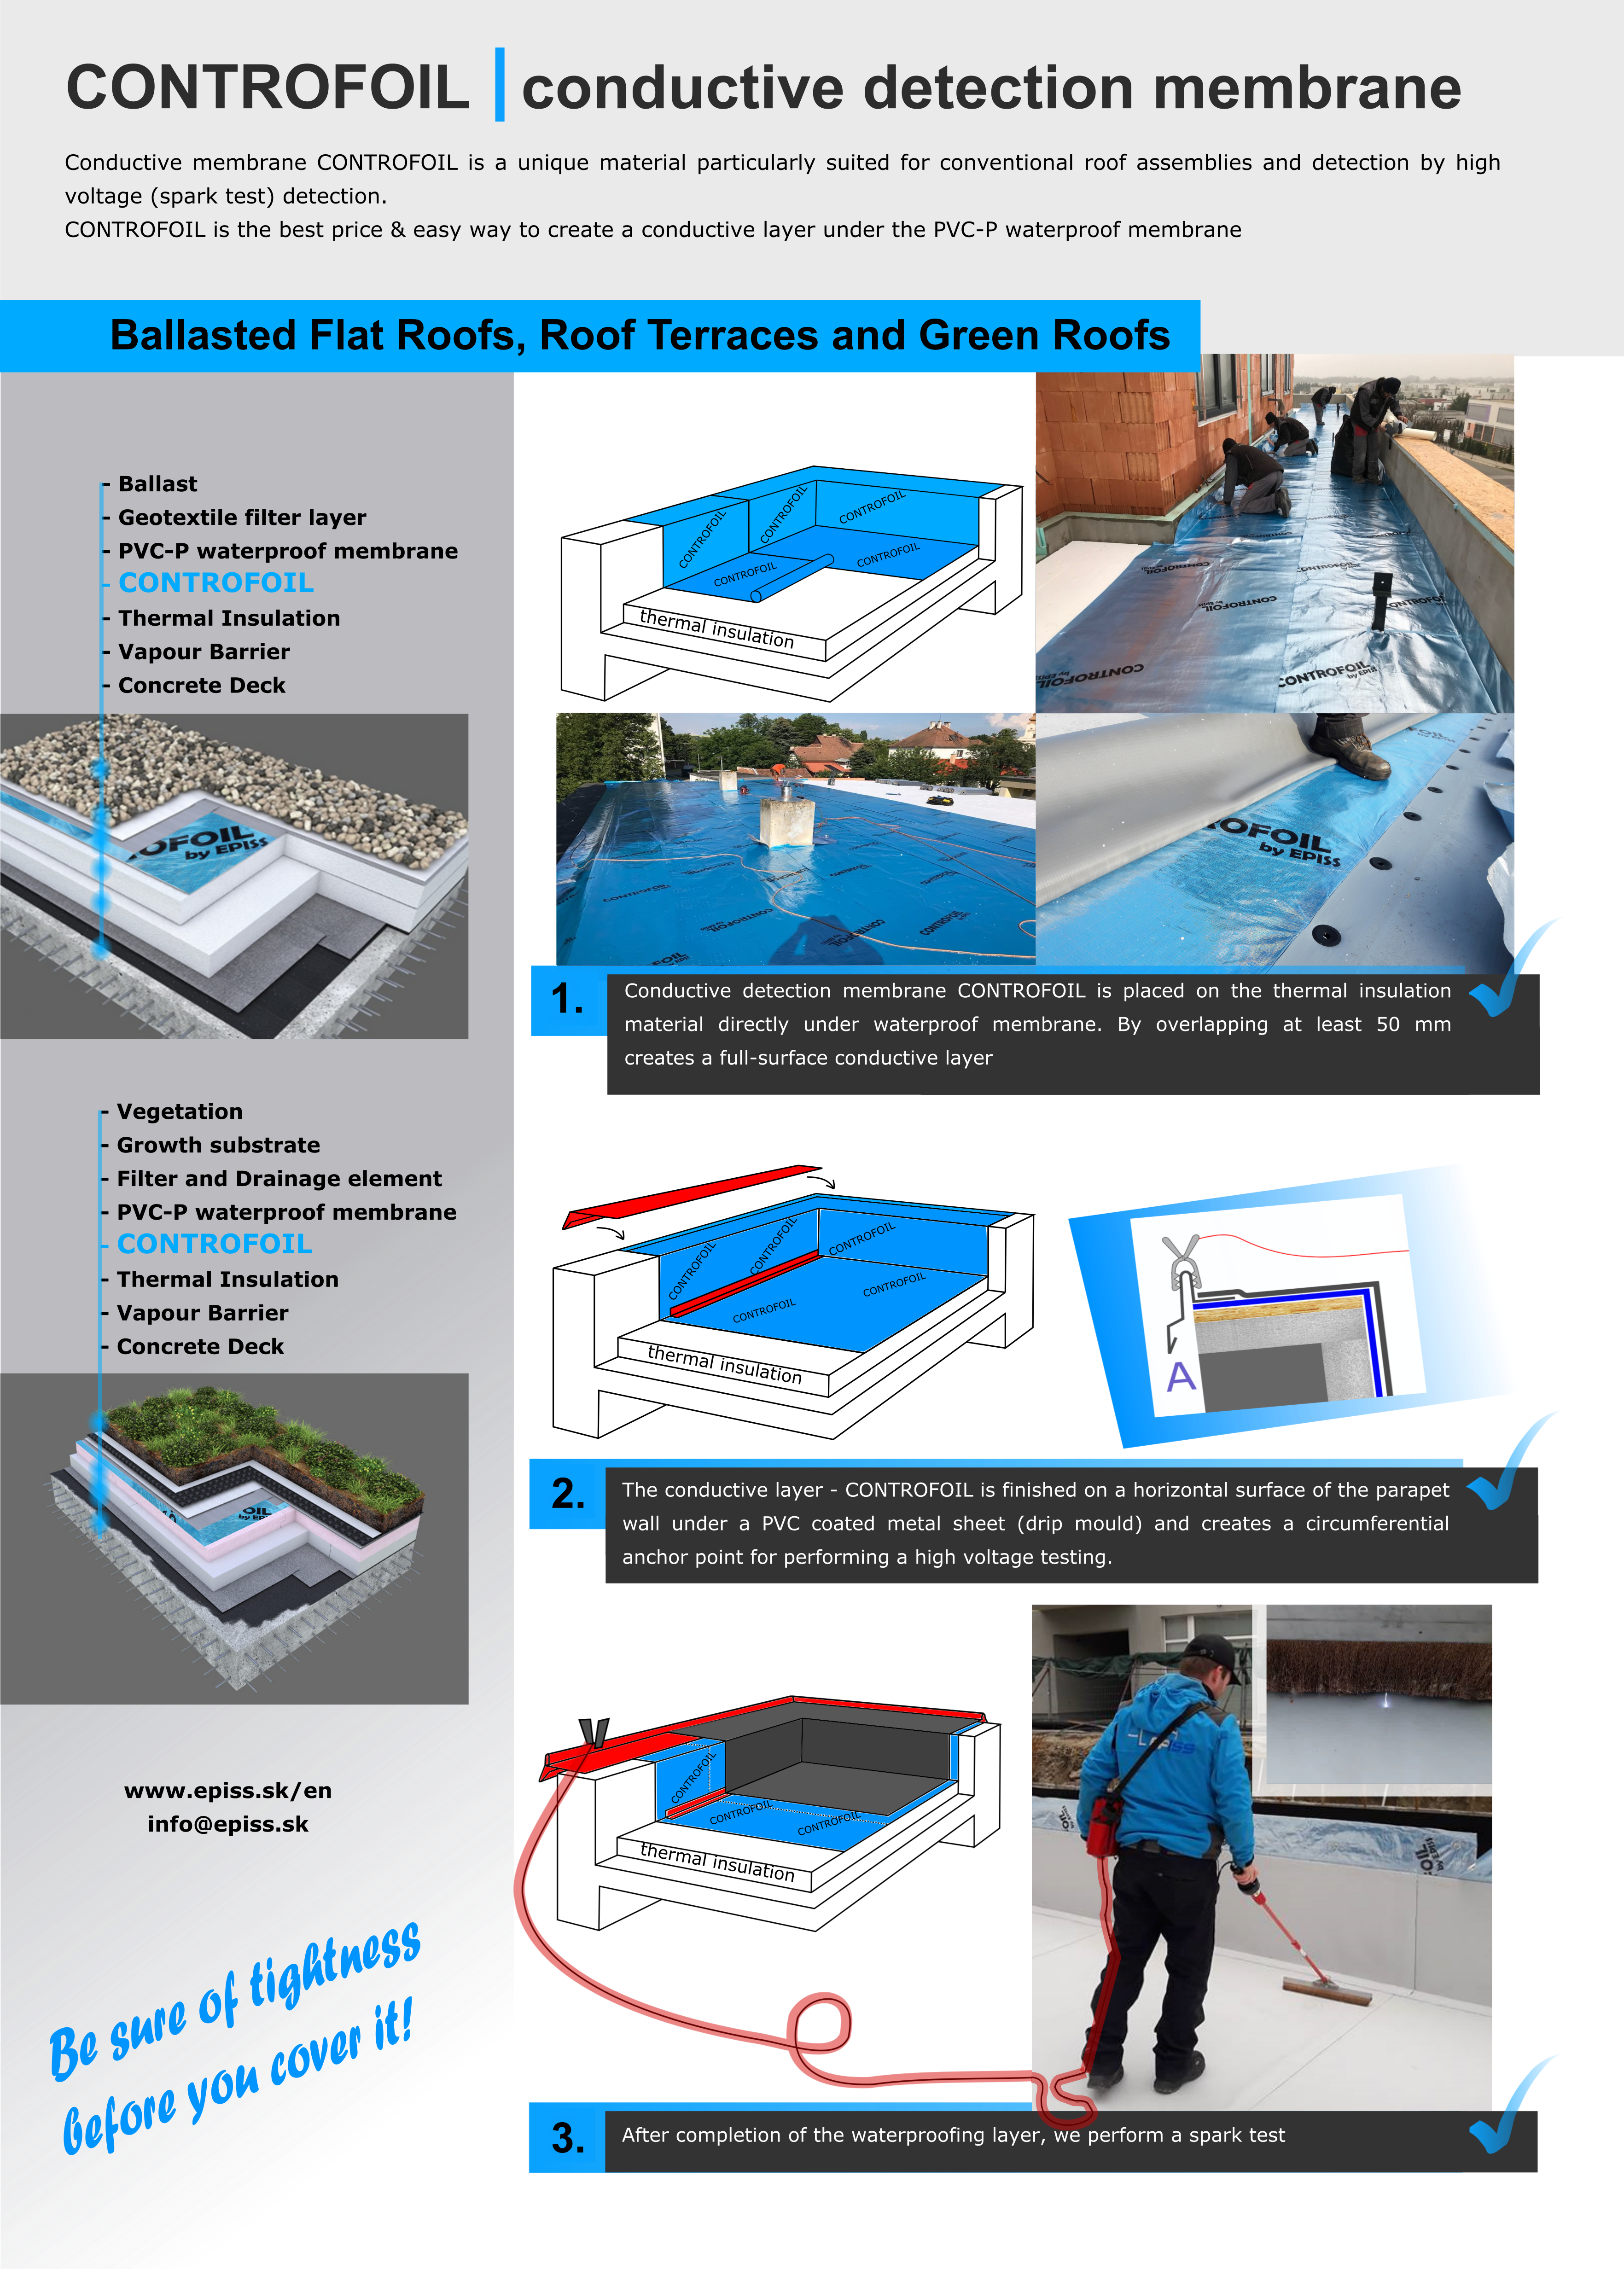 Pin On Leak Detection Of Flat Roof